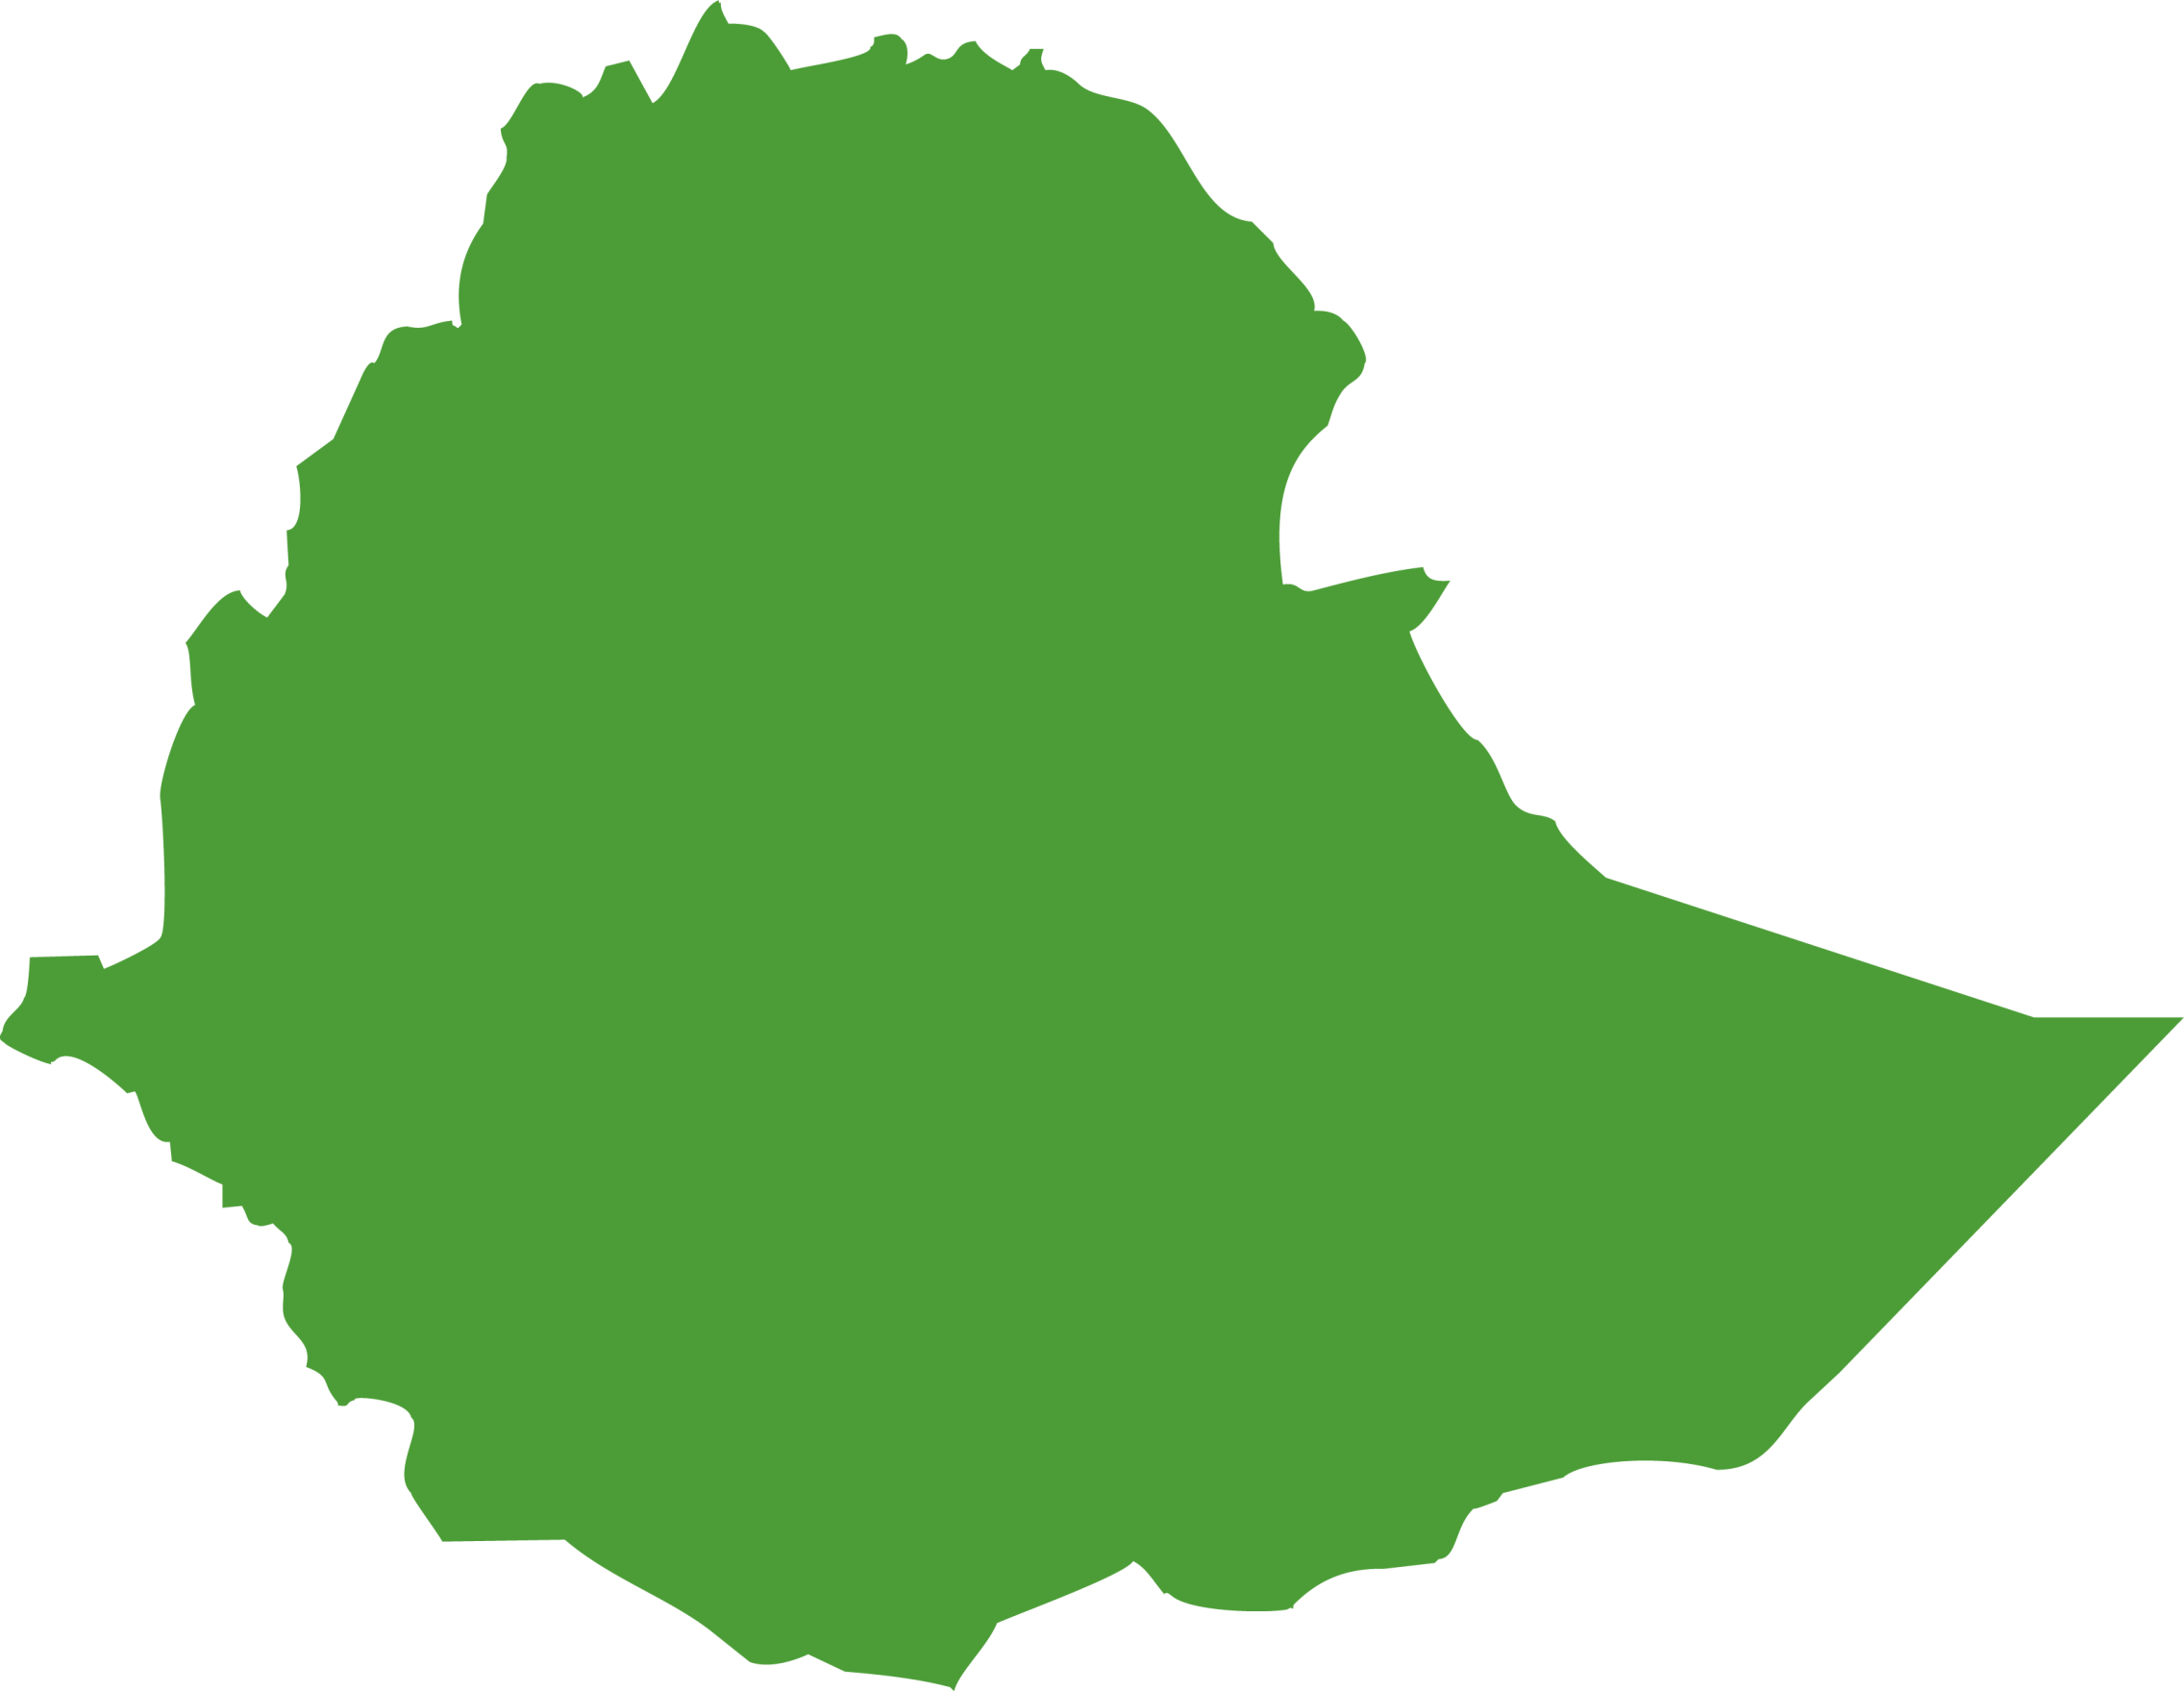 map outline of Ethiopia